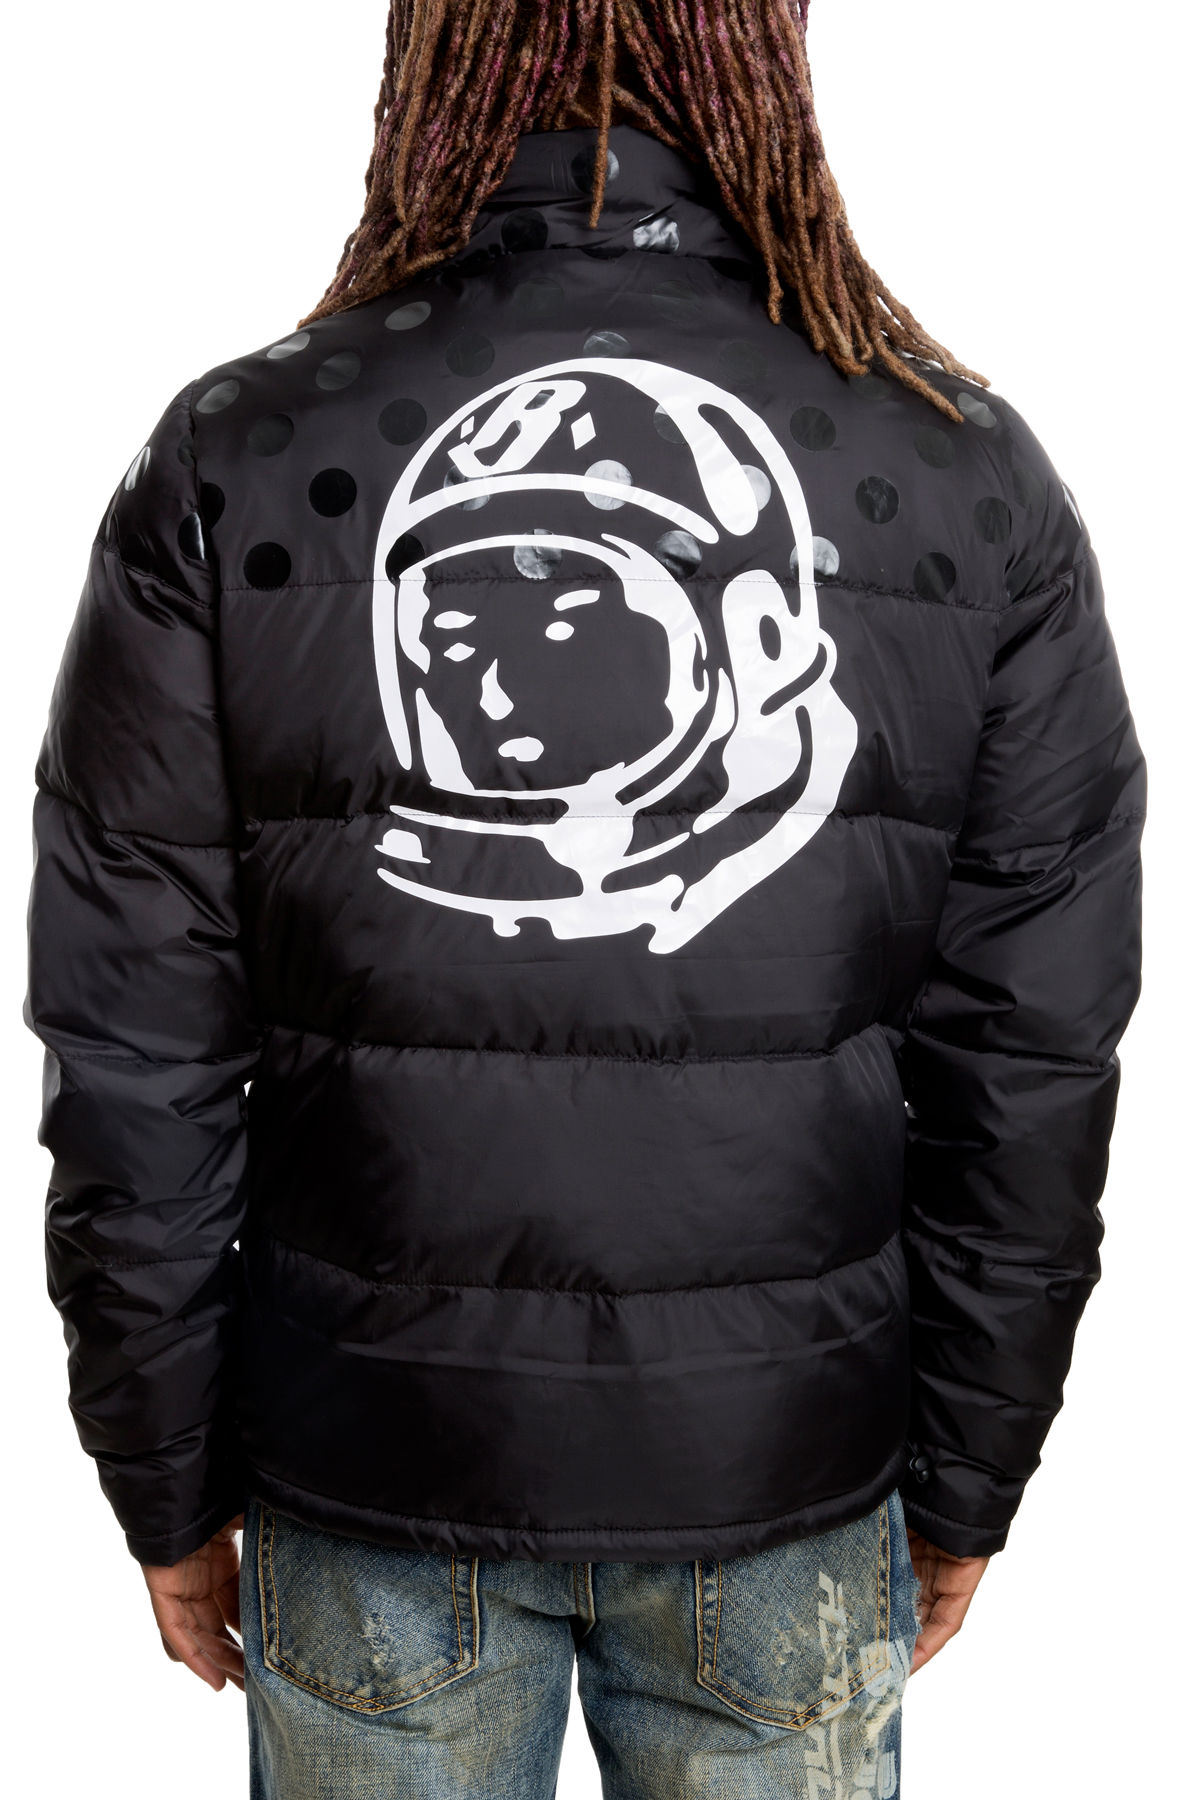 Image of The Celscius Padded Winter Jacket in Black